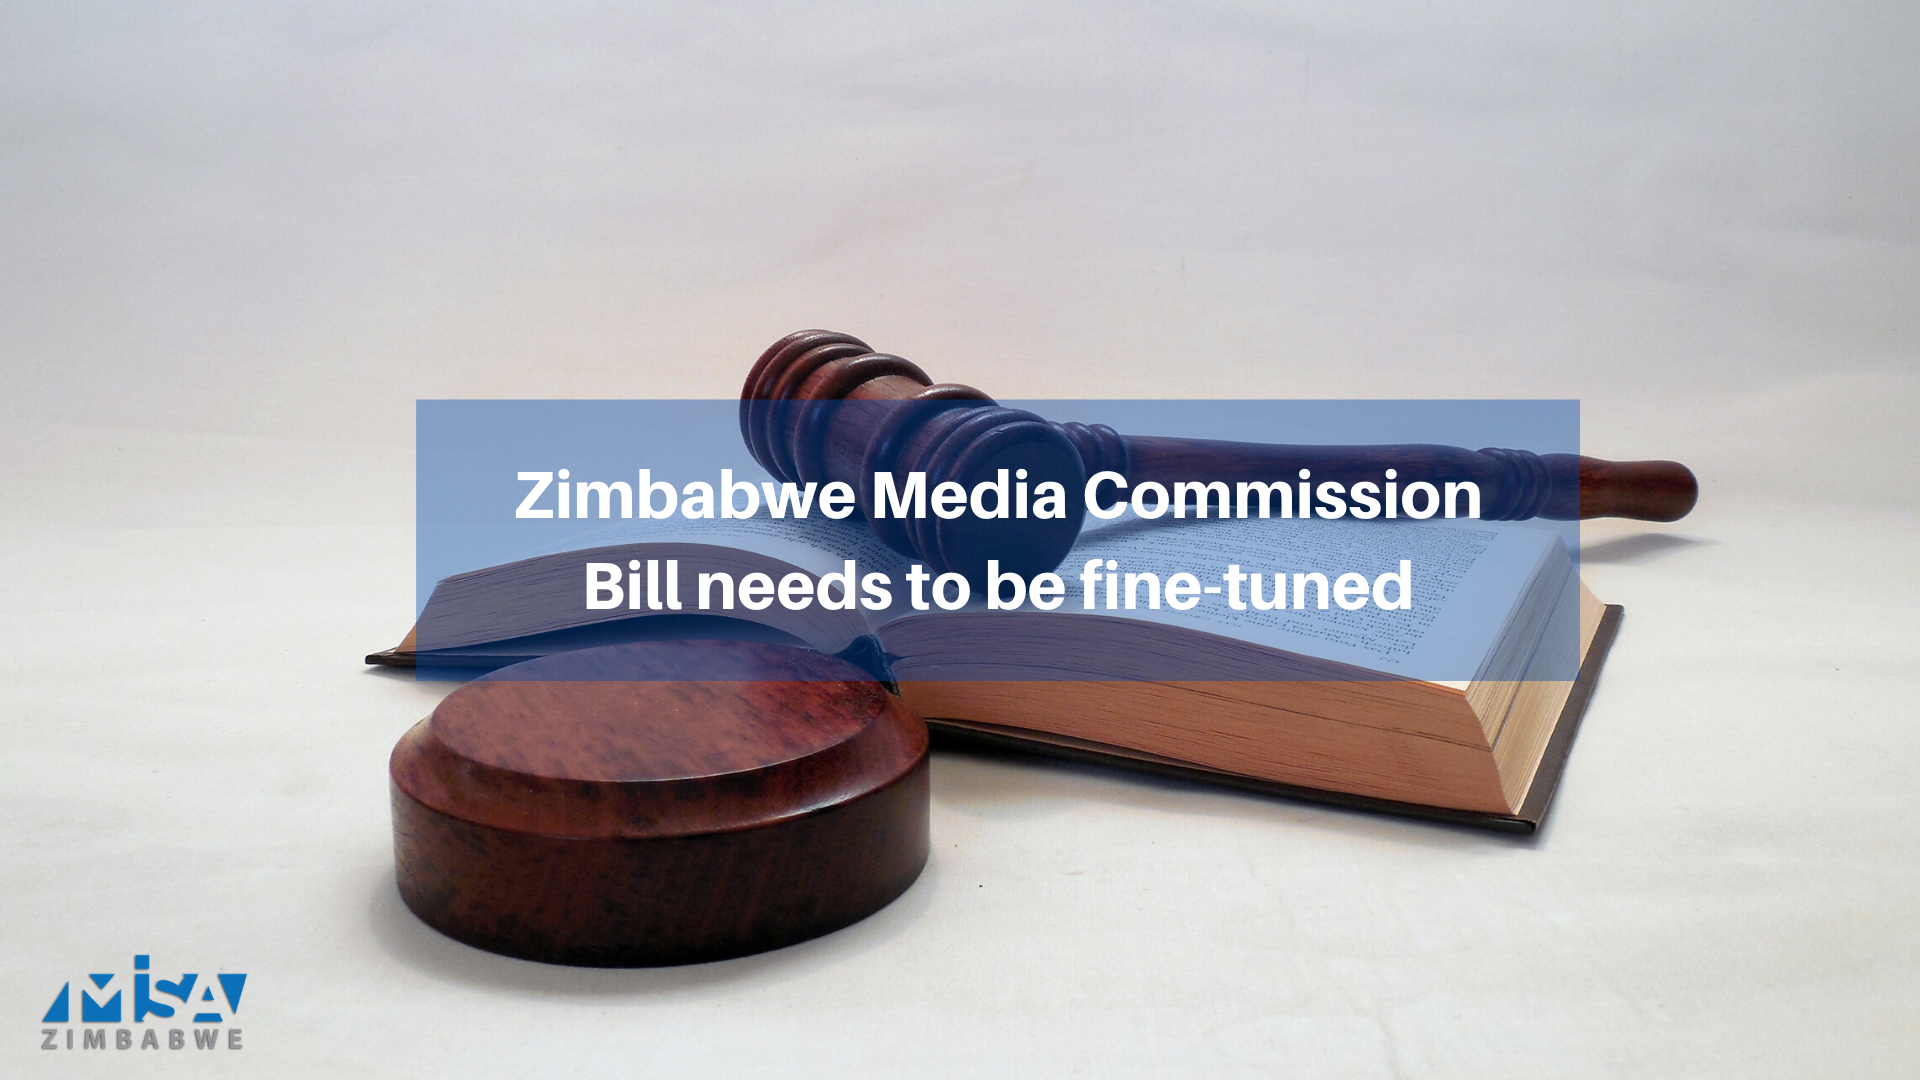 Zimbabwe Media Commission Bill needs to be fine-tuned